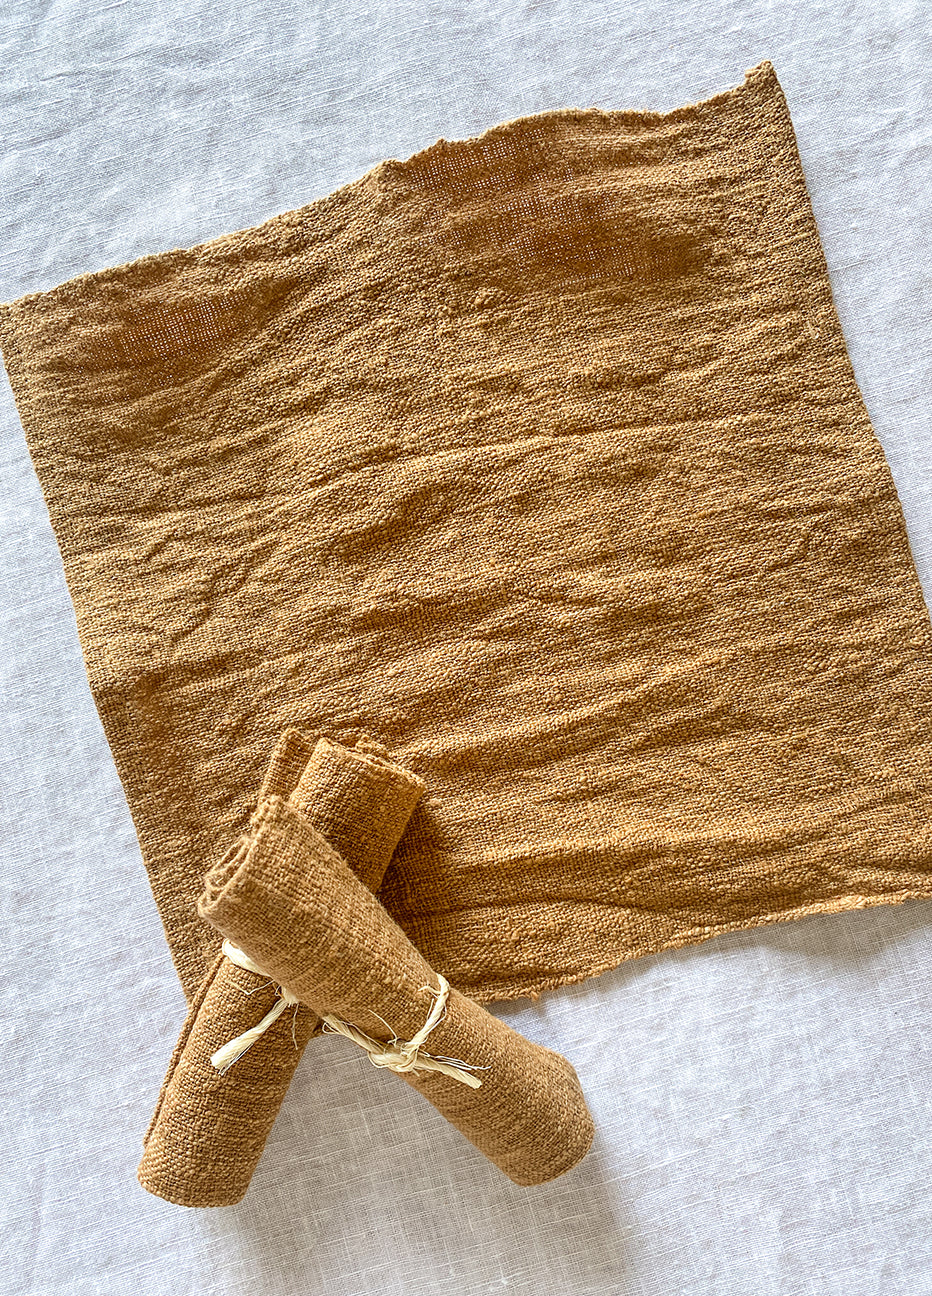 Handspun Organic Coyuchi Cotton Face Cloth